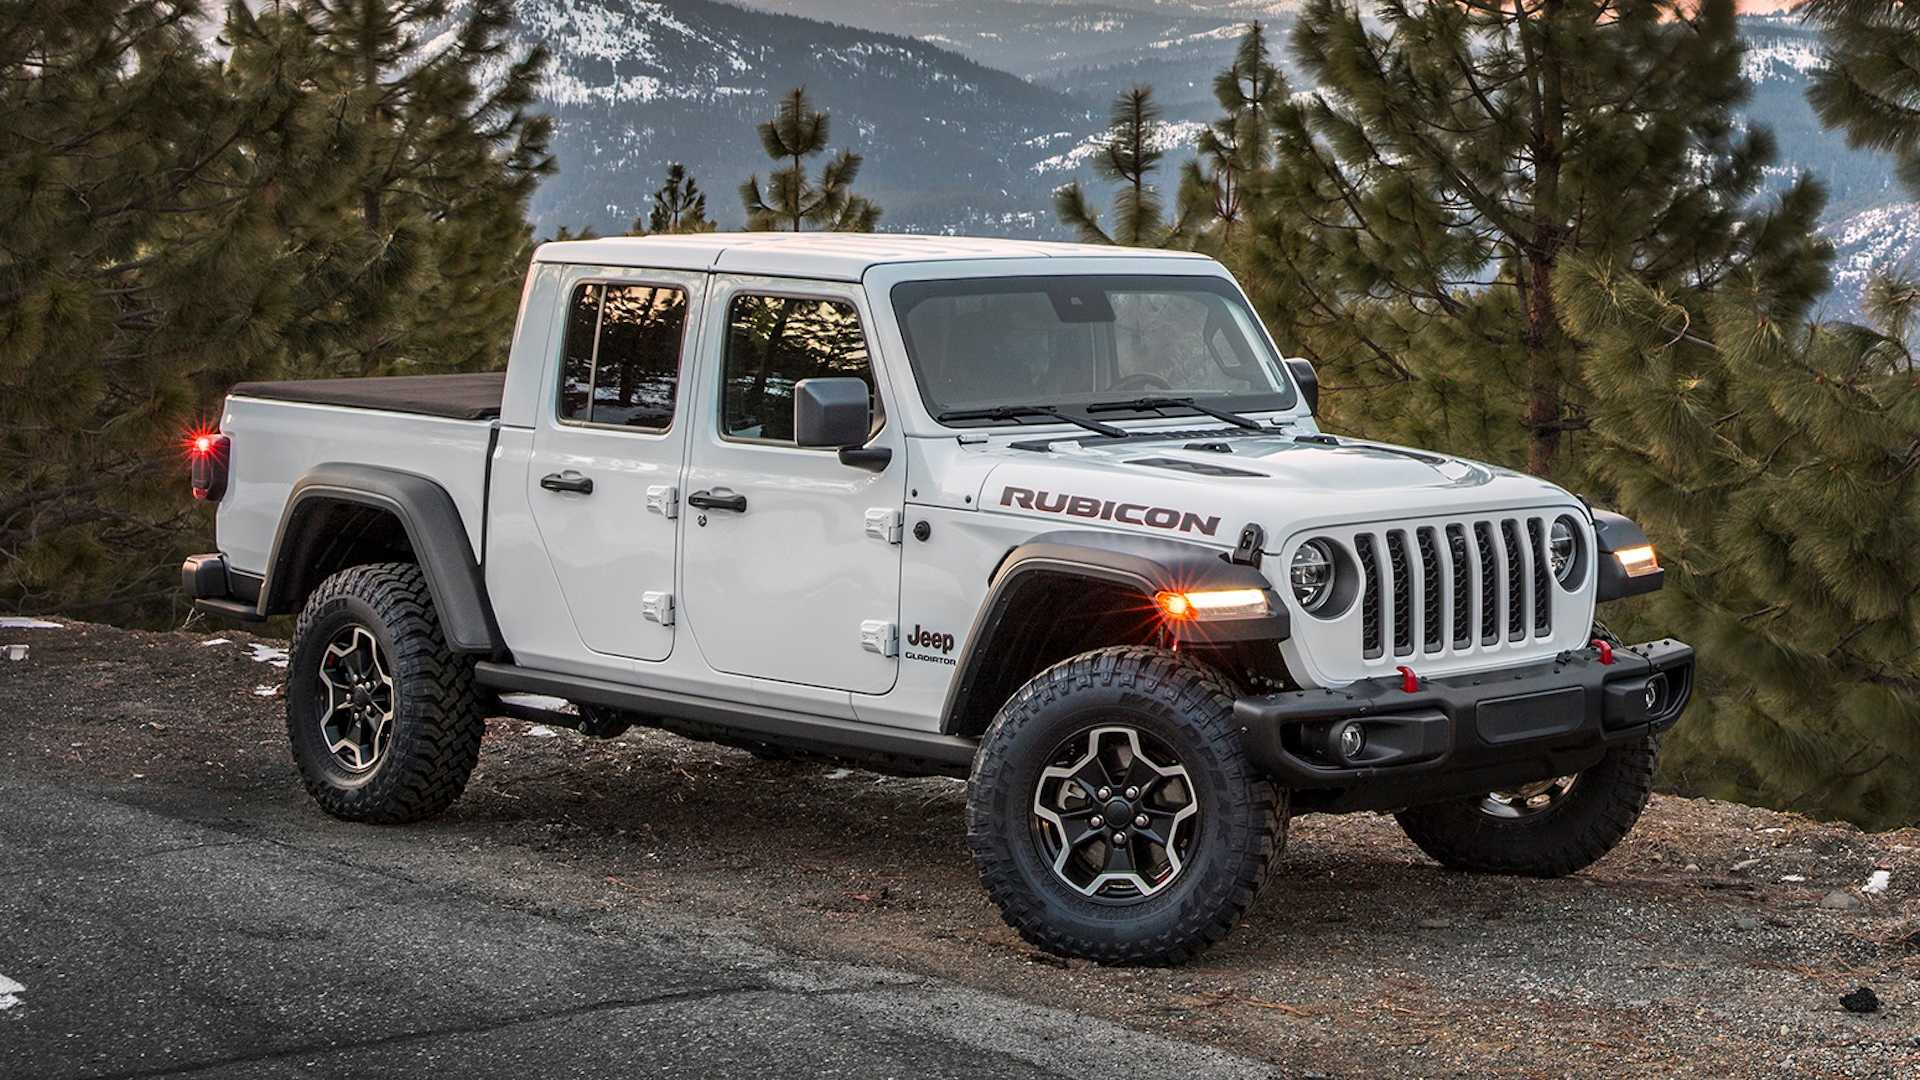 86 All New 2020 Jeep Gladiator Msrp Speed Test